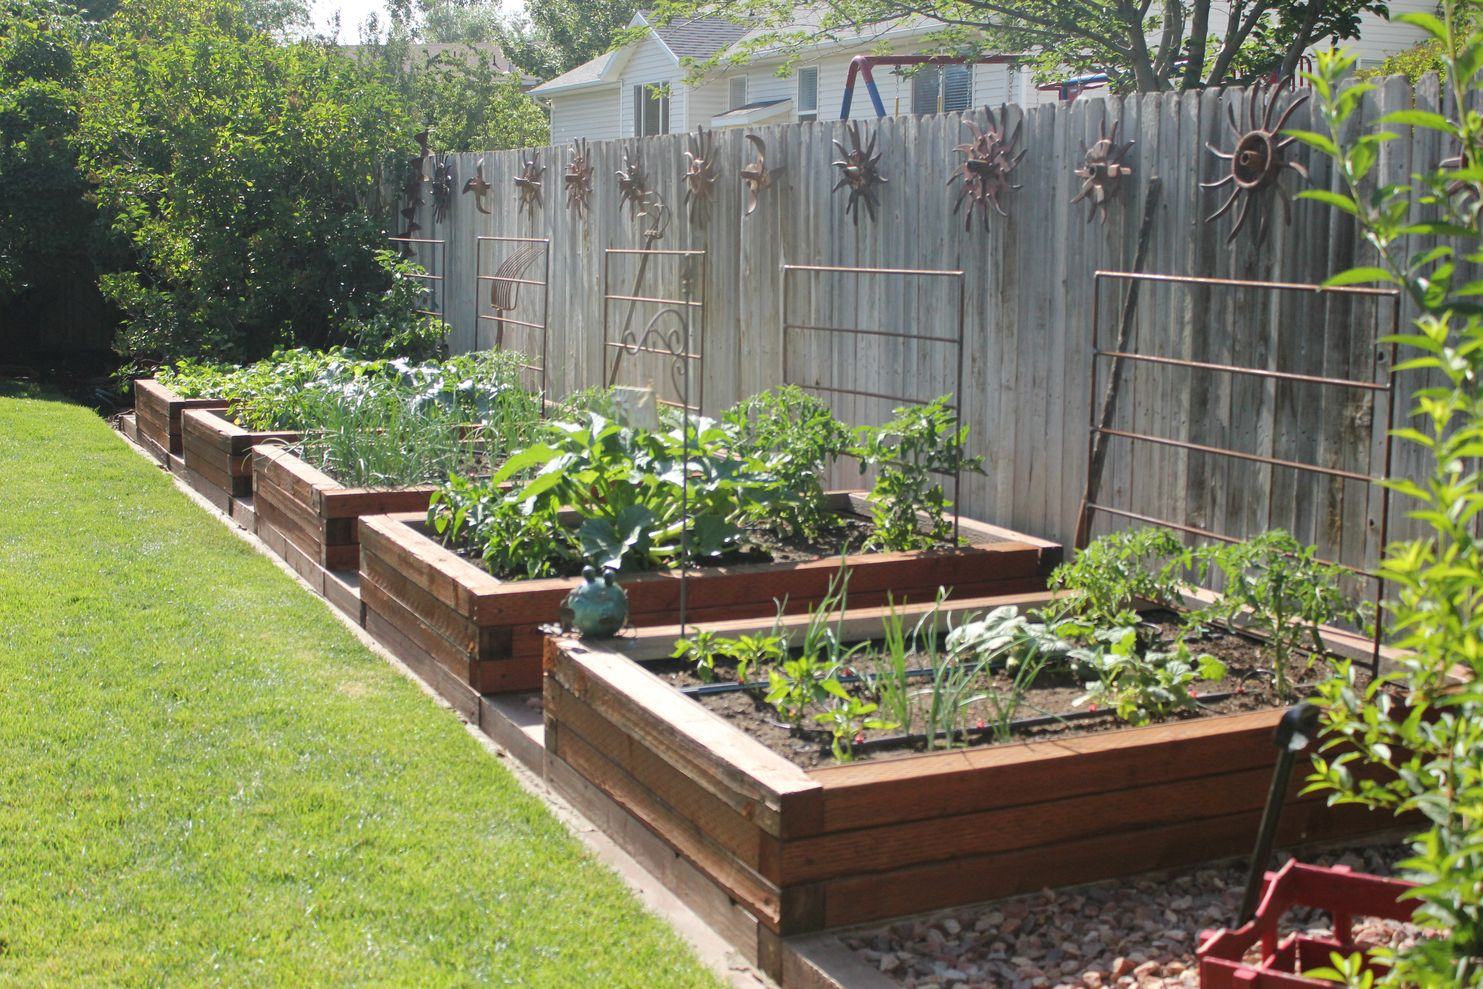 Affordable backyard vegetable garden designs ideas 19 ...